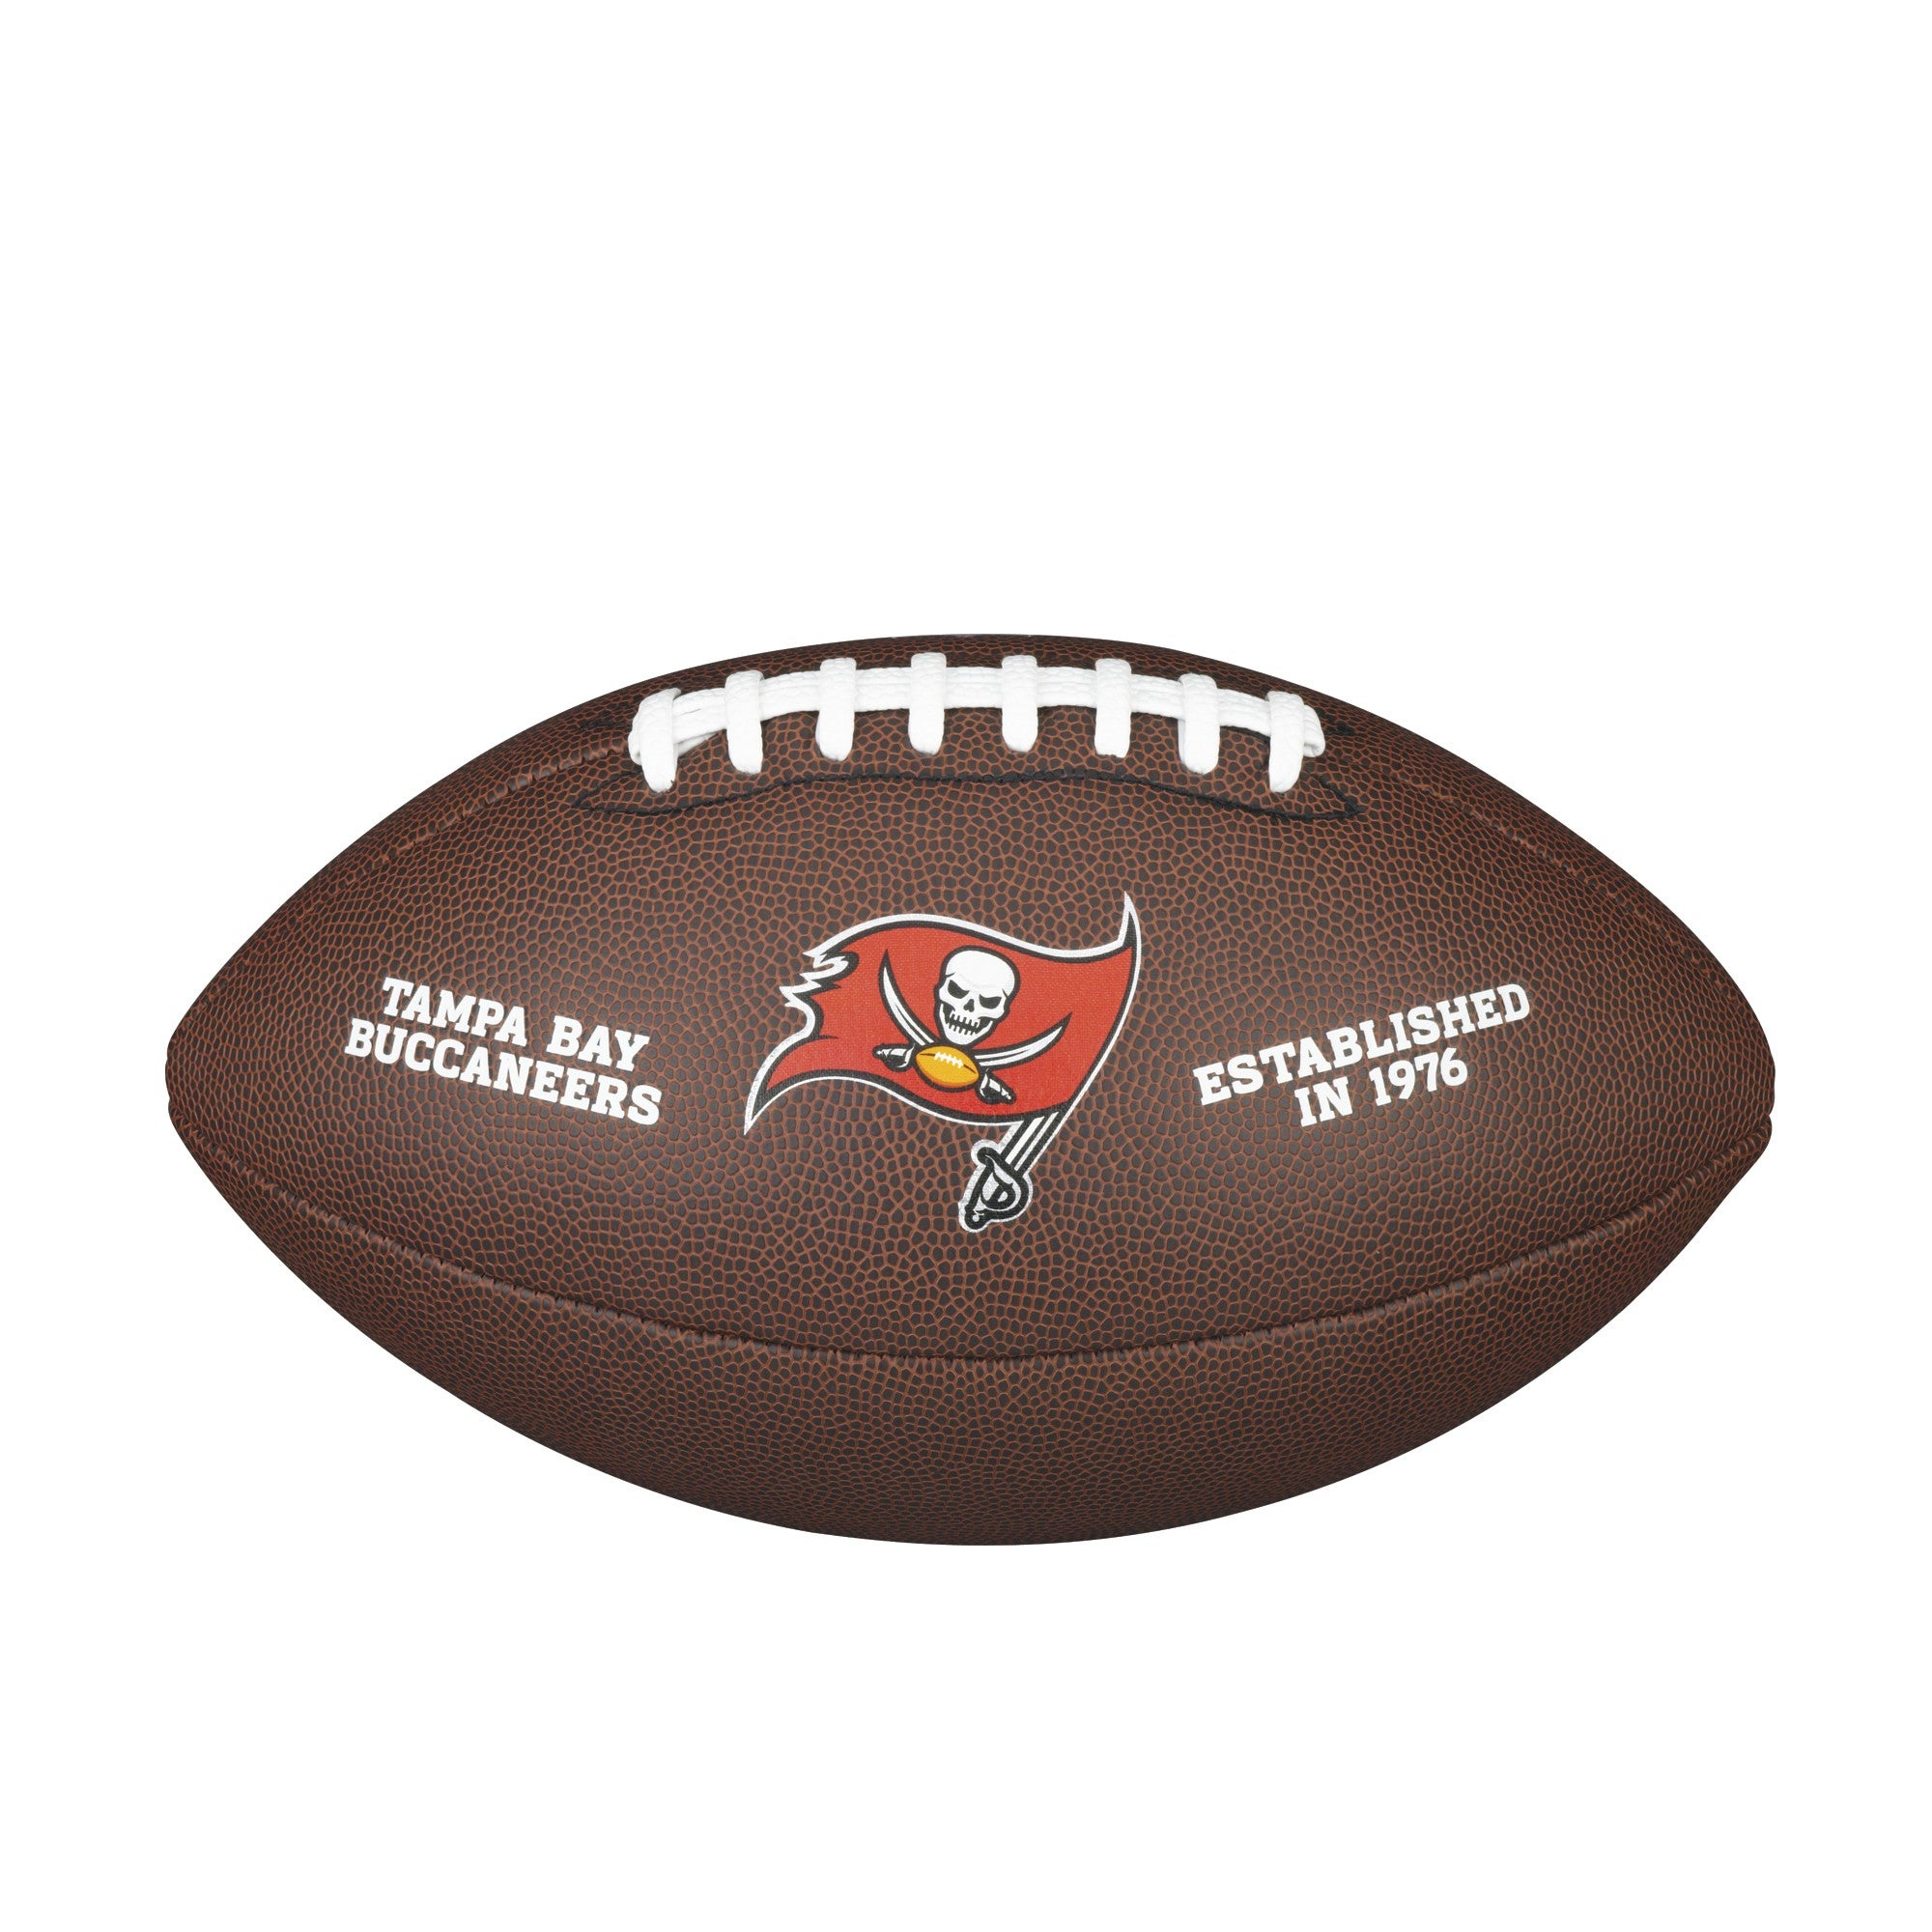 NFL TEAM LOGO COMPOSITE FOOTBALL - OFFICIAL, TAMPA BAY BUCCANEERS